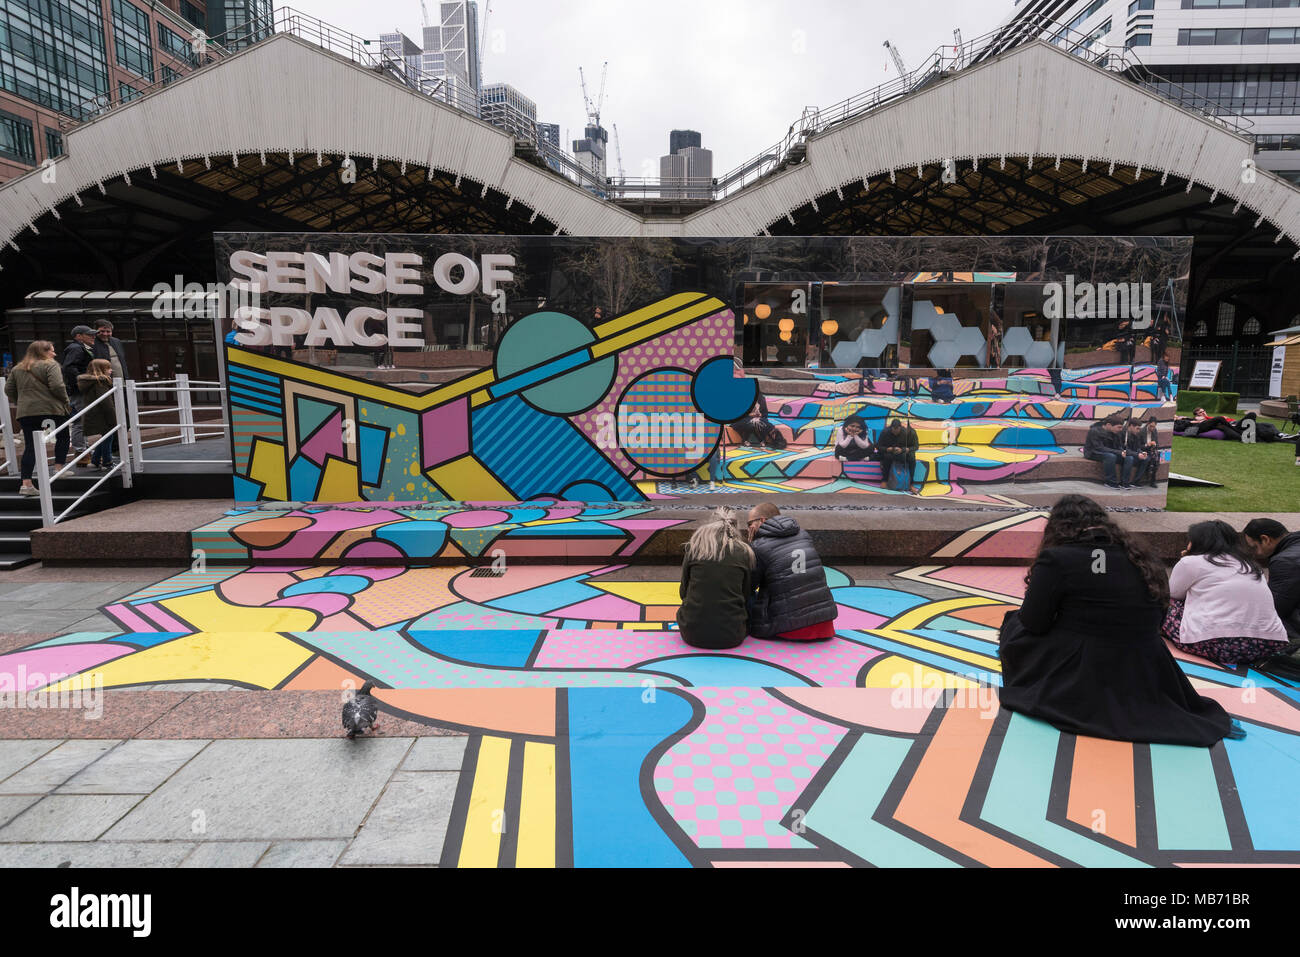 London, UK. 7 April 2018.  The colourful entrance mural by graphic designer artist Supermundane outside 'Sense of Space', an art pop-up which opened to the public in Broadgate.  Comprising four rooms to challenge the visitor's sensory perceptions through art, the installation is open until 18 May.   Credit: Stephen Chung / Alamy Live News - Stock Image